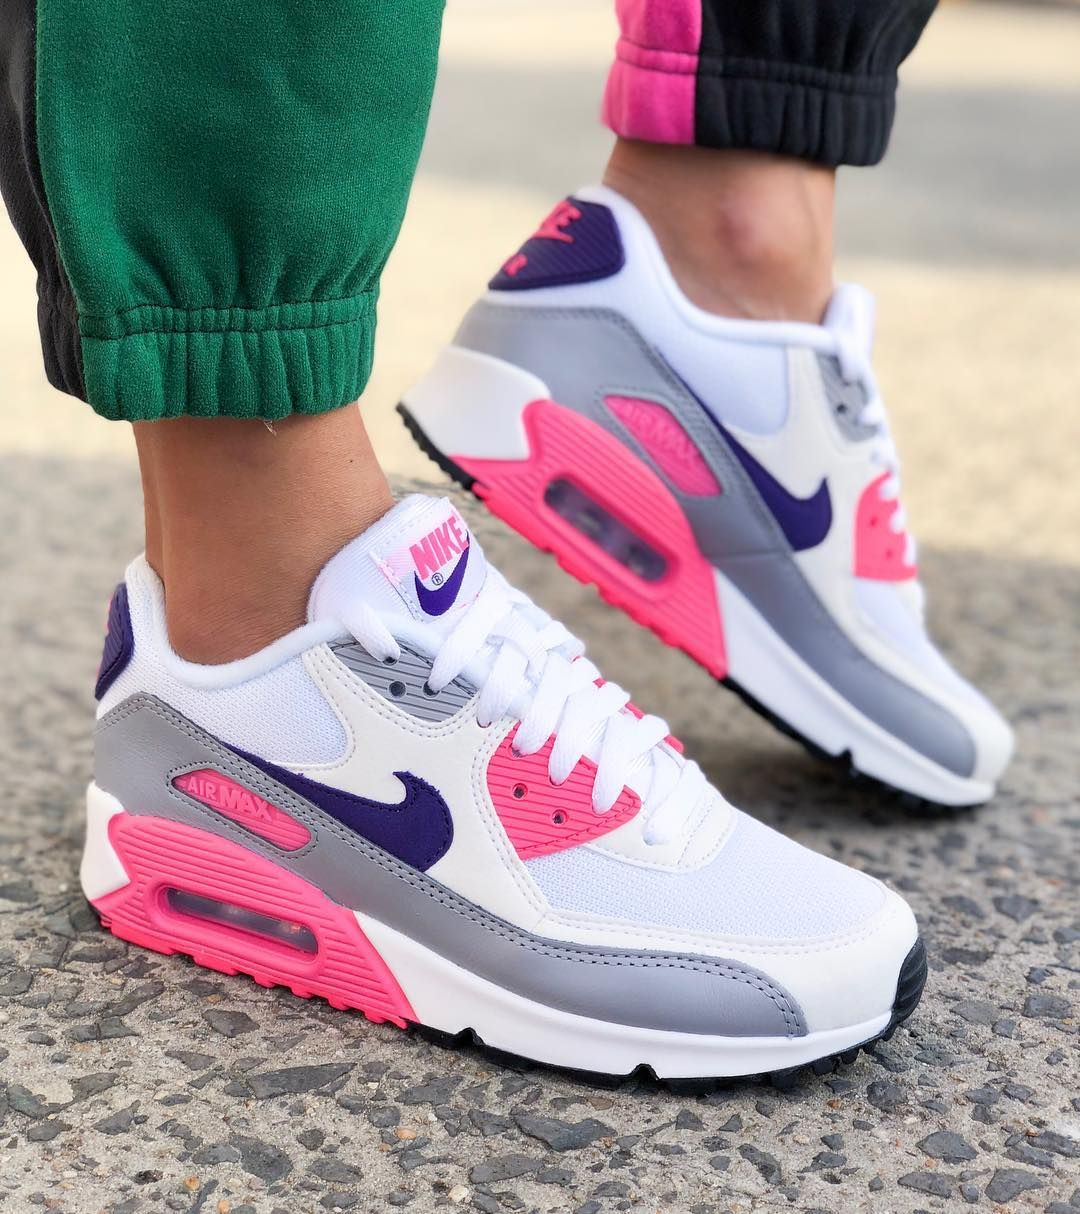 Nike Air Max 90  White Purple Grey Pink  Rematch is part of Nike air max 90 white - We take a look at this classic Nike Air Max 90 women's shoe in a winning colour combination of white, purple, grey and pink